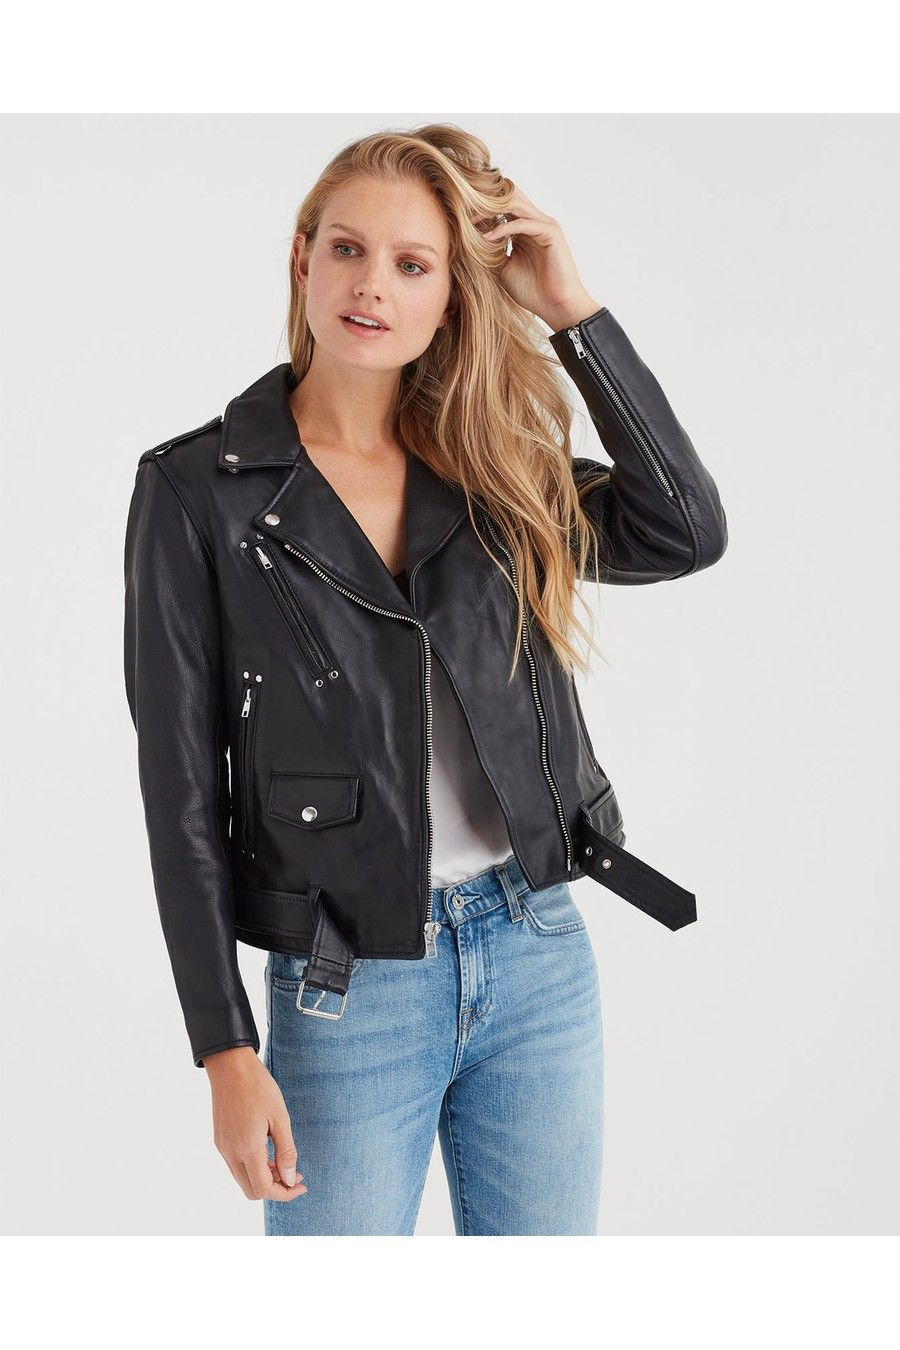 Basic Leather Biker Jacket In Black by 7 For All Mankind